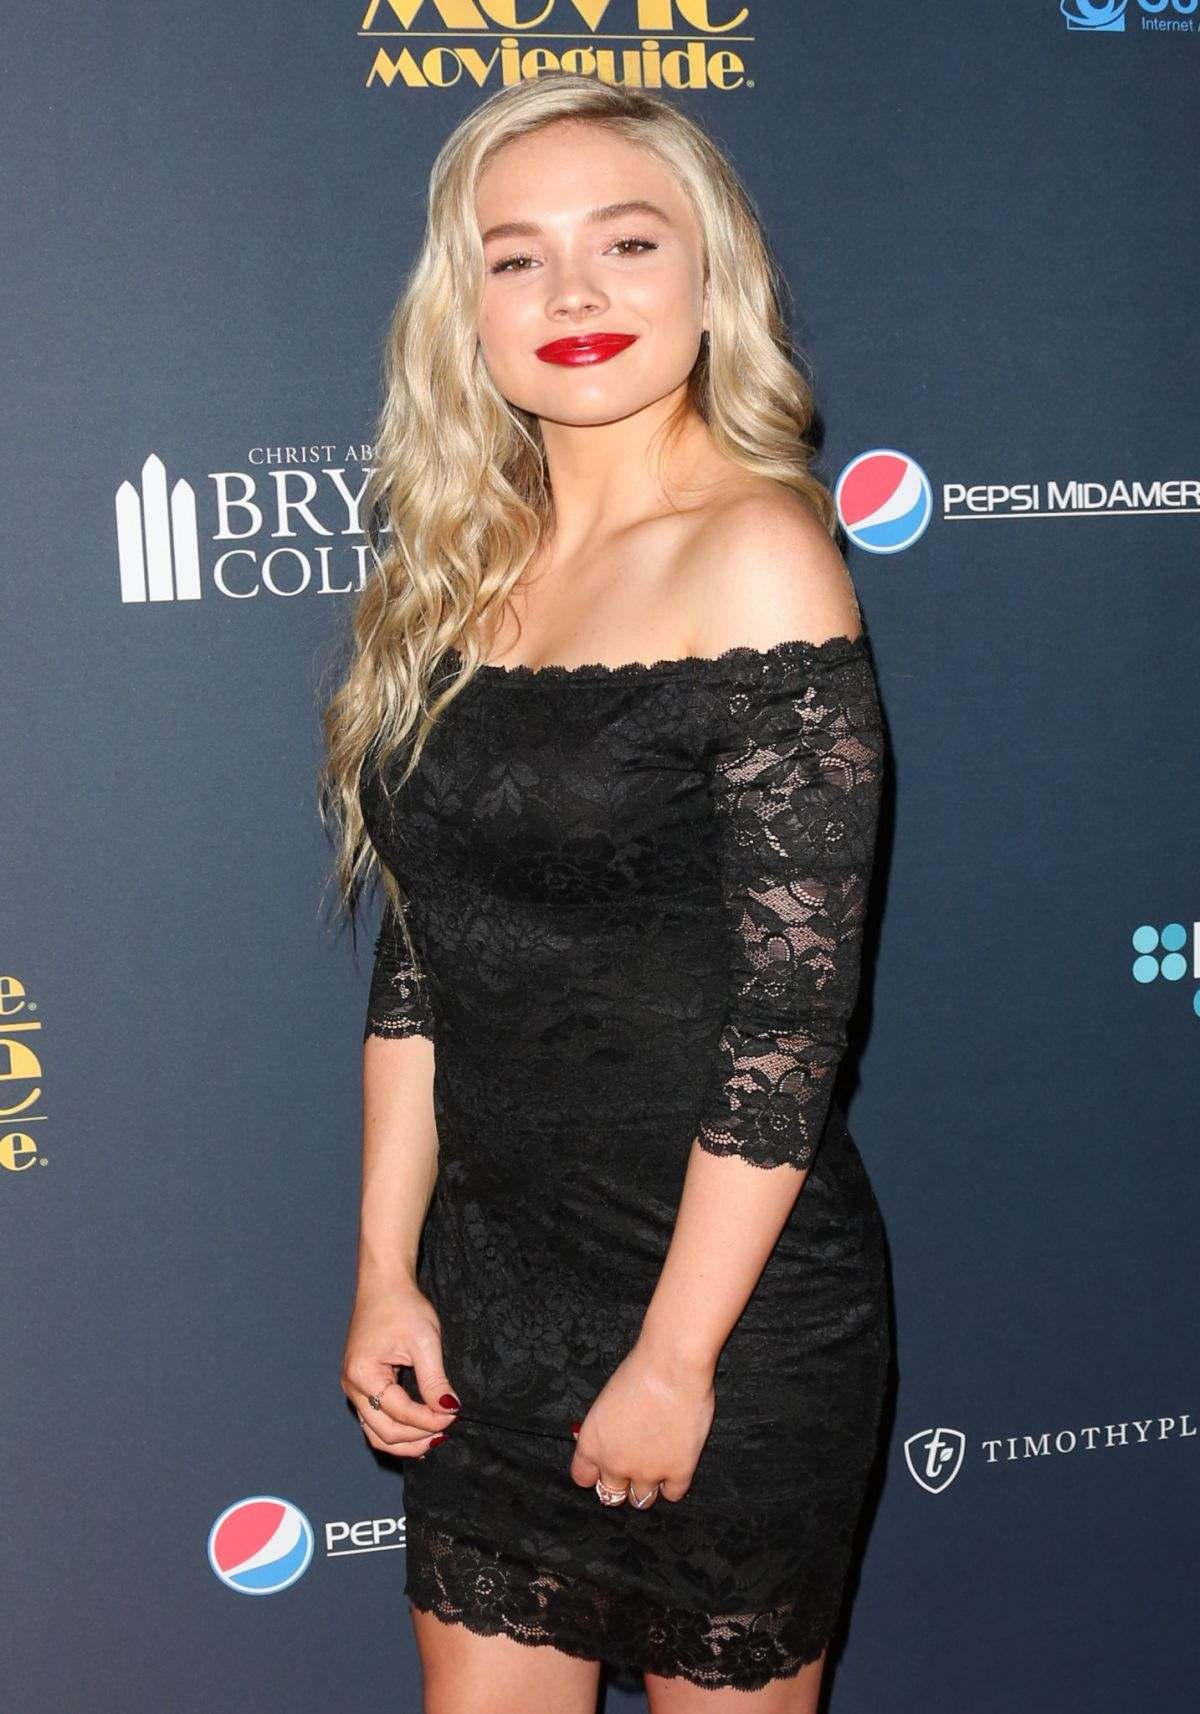 natalie alyn lind marvel movies fandom powered by wikia